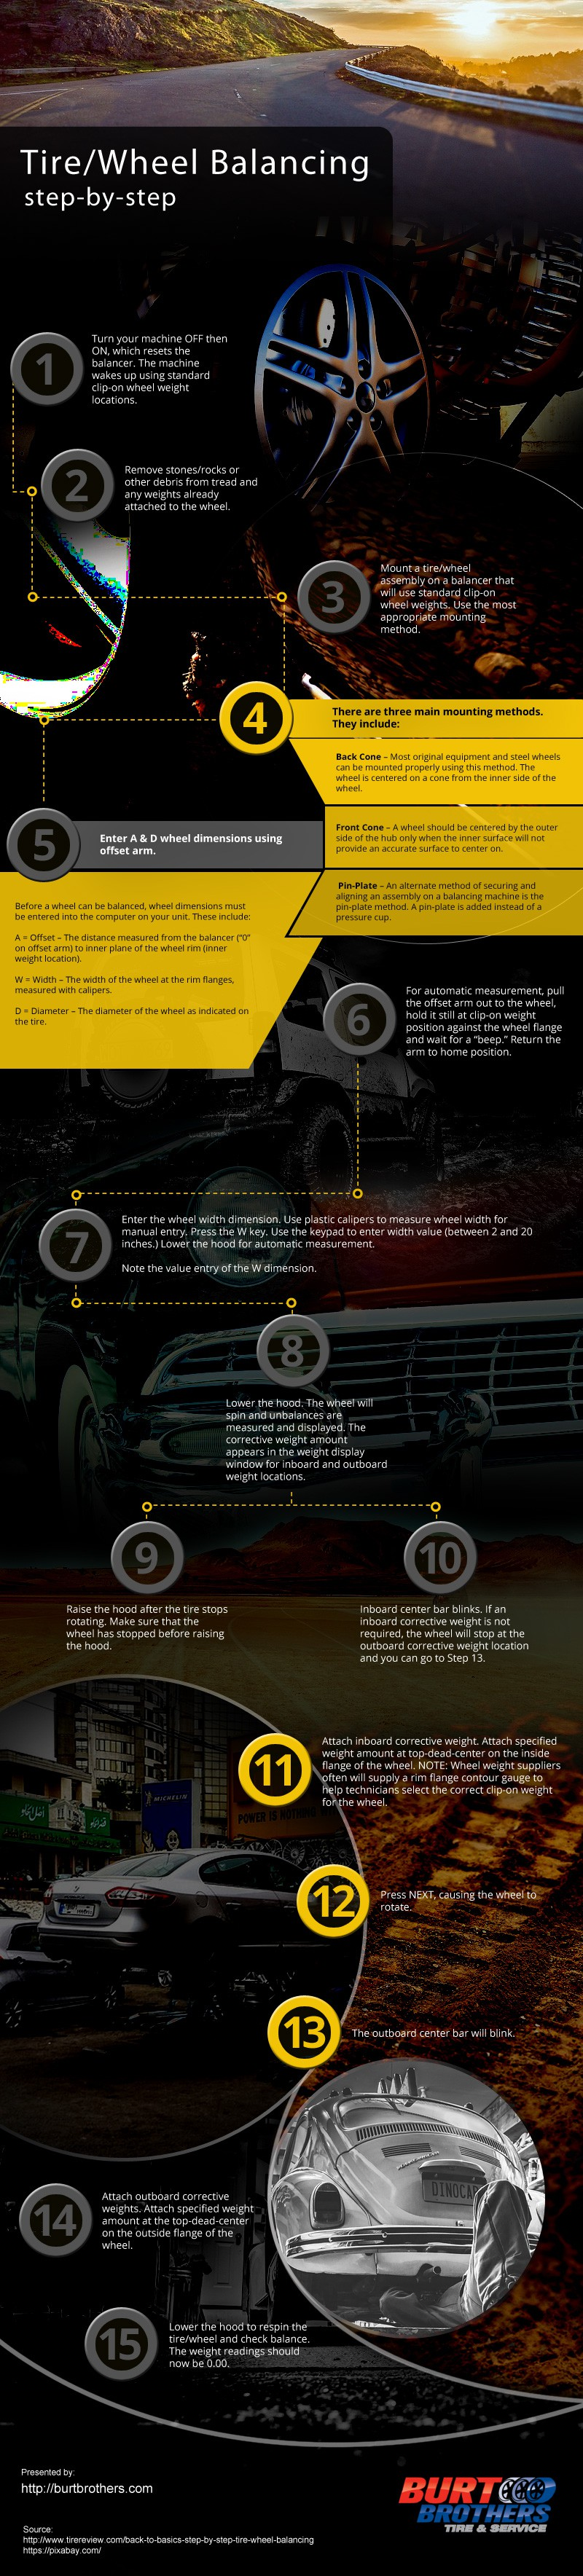 How-Tire-and-Wheel-Balancing-Works Infographic